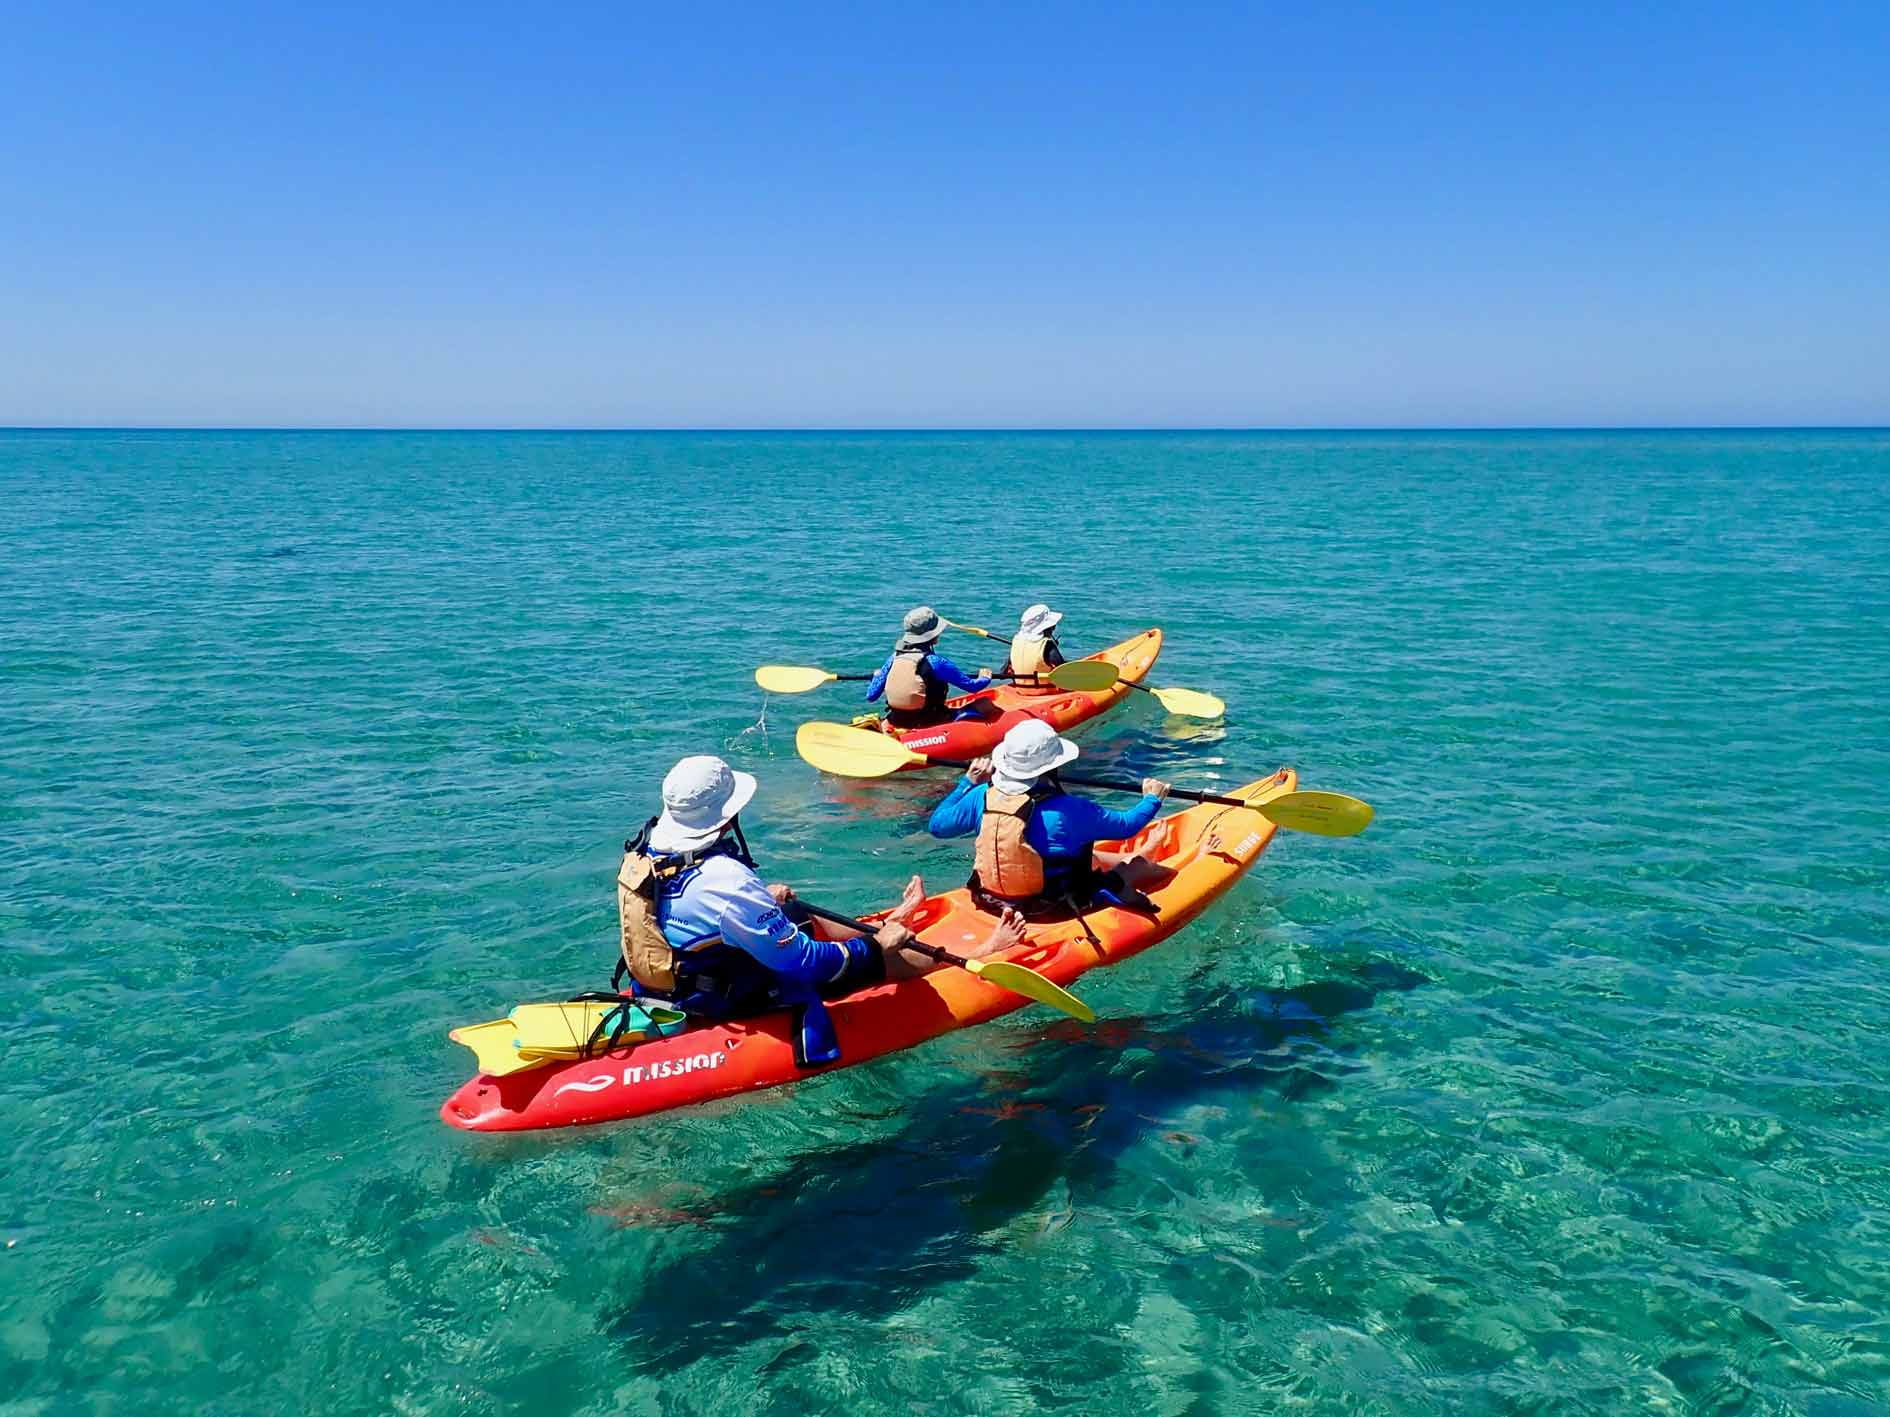 2 double sea kayaks paddling across clear turquoise water on half day sea kayak and snorkel tour, Turtle Tour at Ningaloo Reef, Exmouth, Western Australia